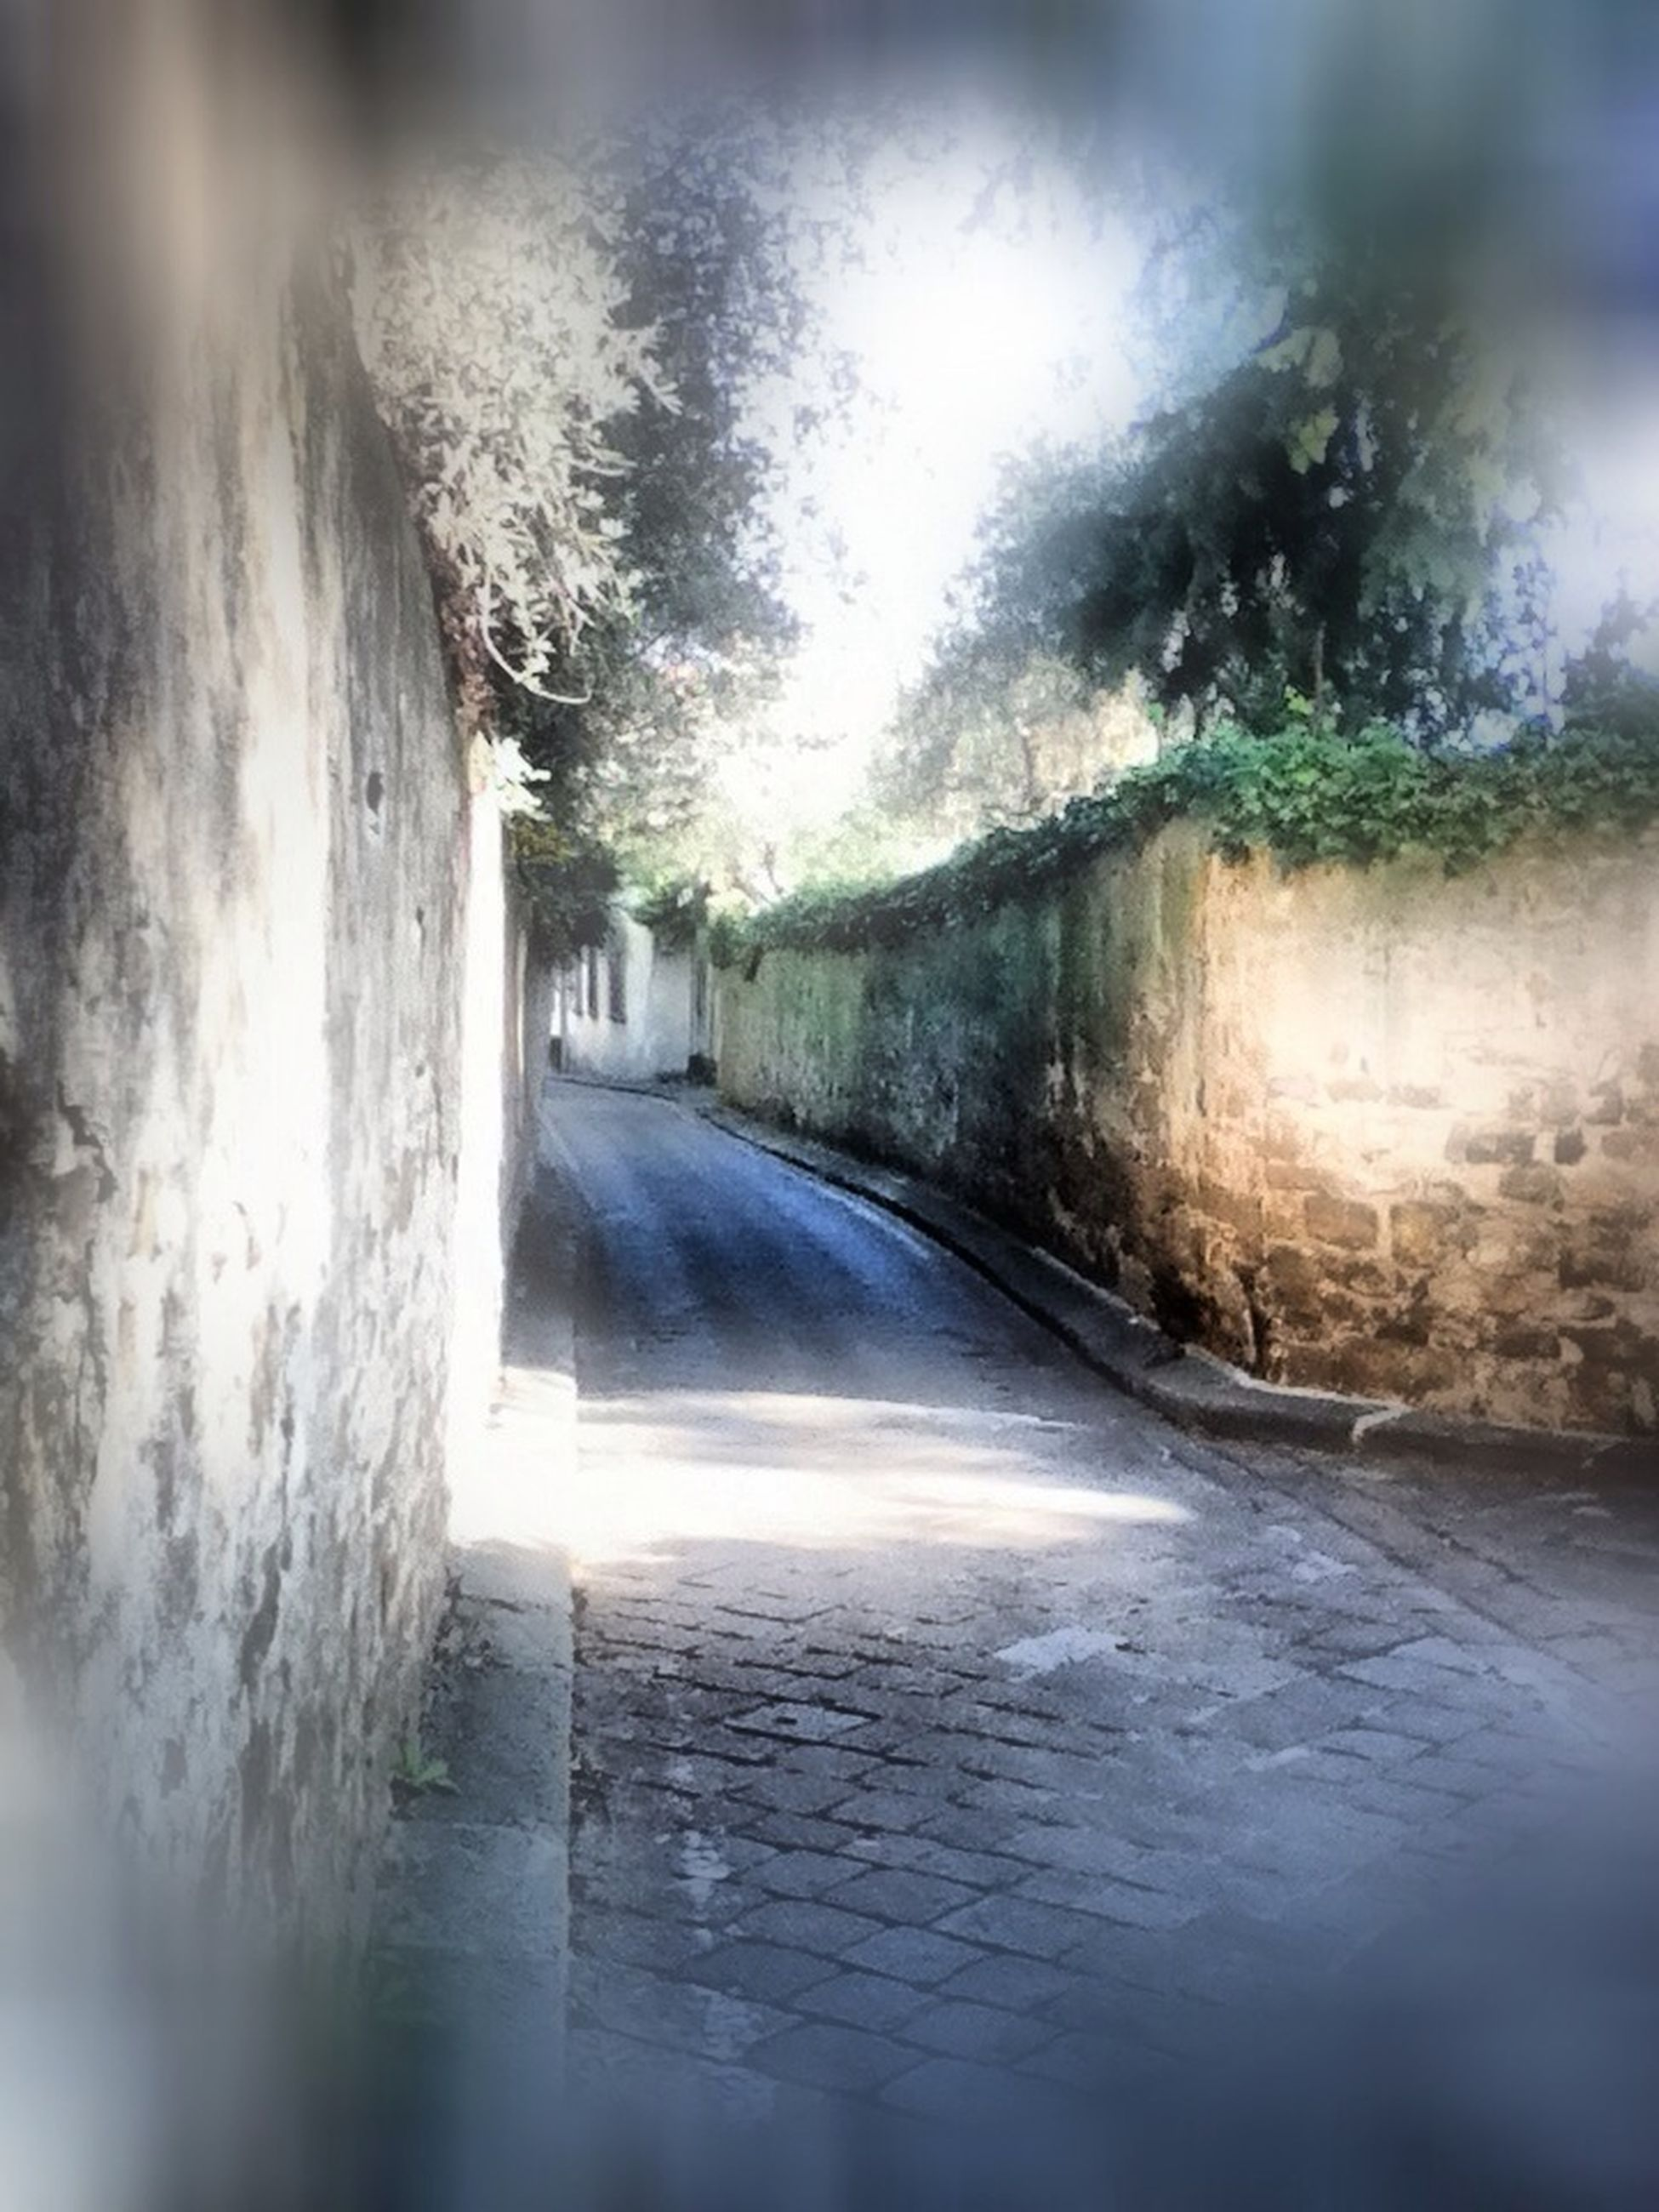 the way forward, water, diminishing perspective, built structure, wet, architecture, narrow, tunnel, vanishing point, indoors, no people, day, reflection, motion, wall - building feature, street, tree, nature, surface level